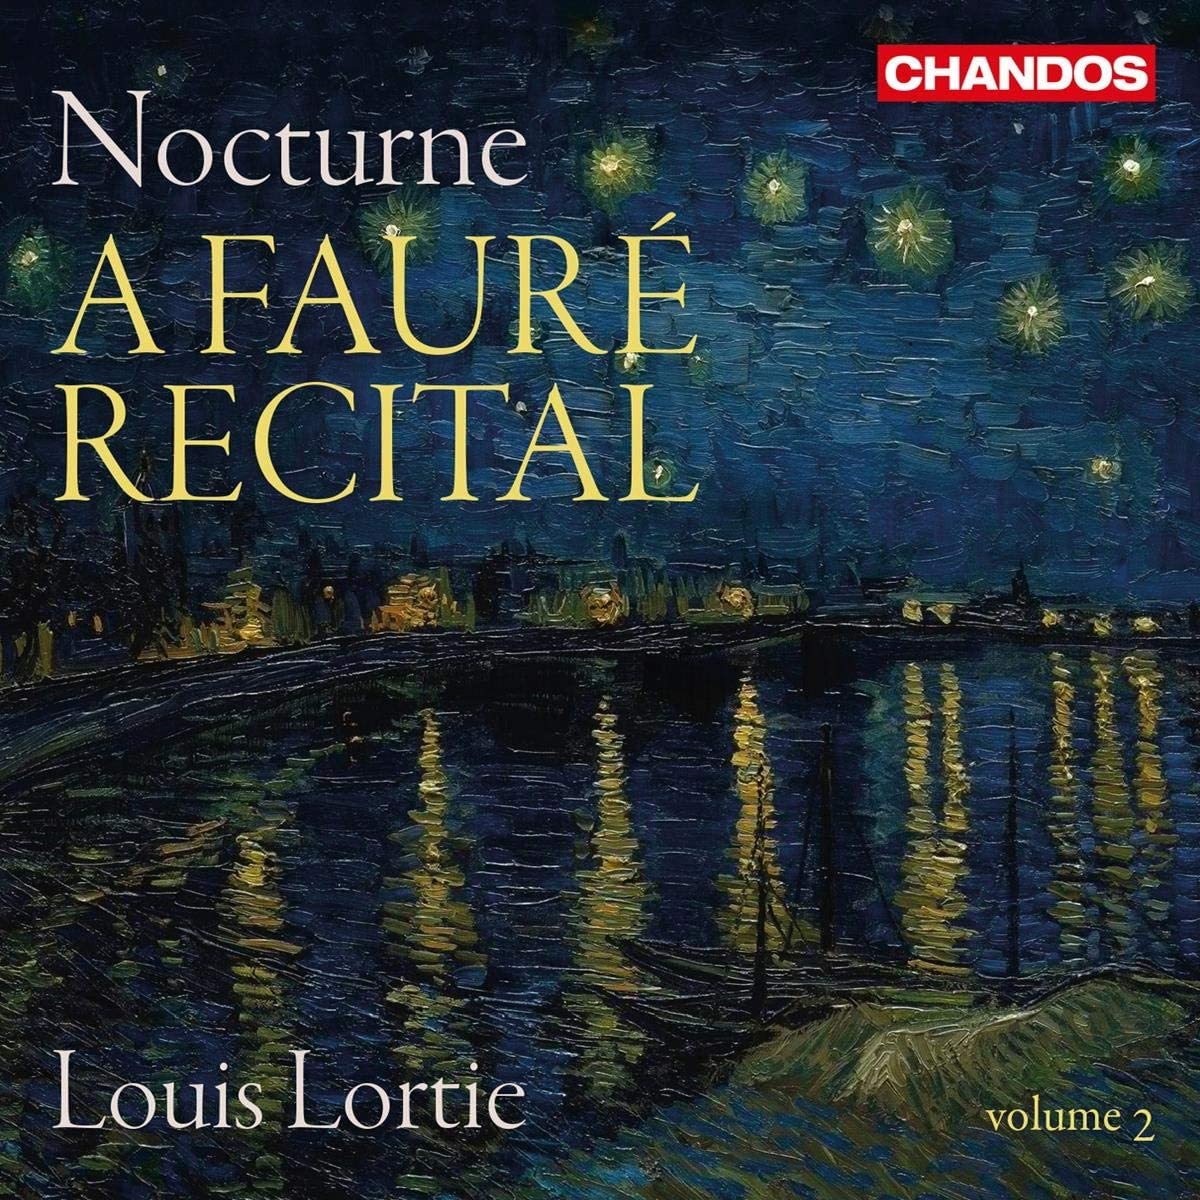 Review of FAURÉ Vol 2 'In paradisum' (Louis Lortie)